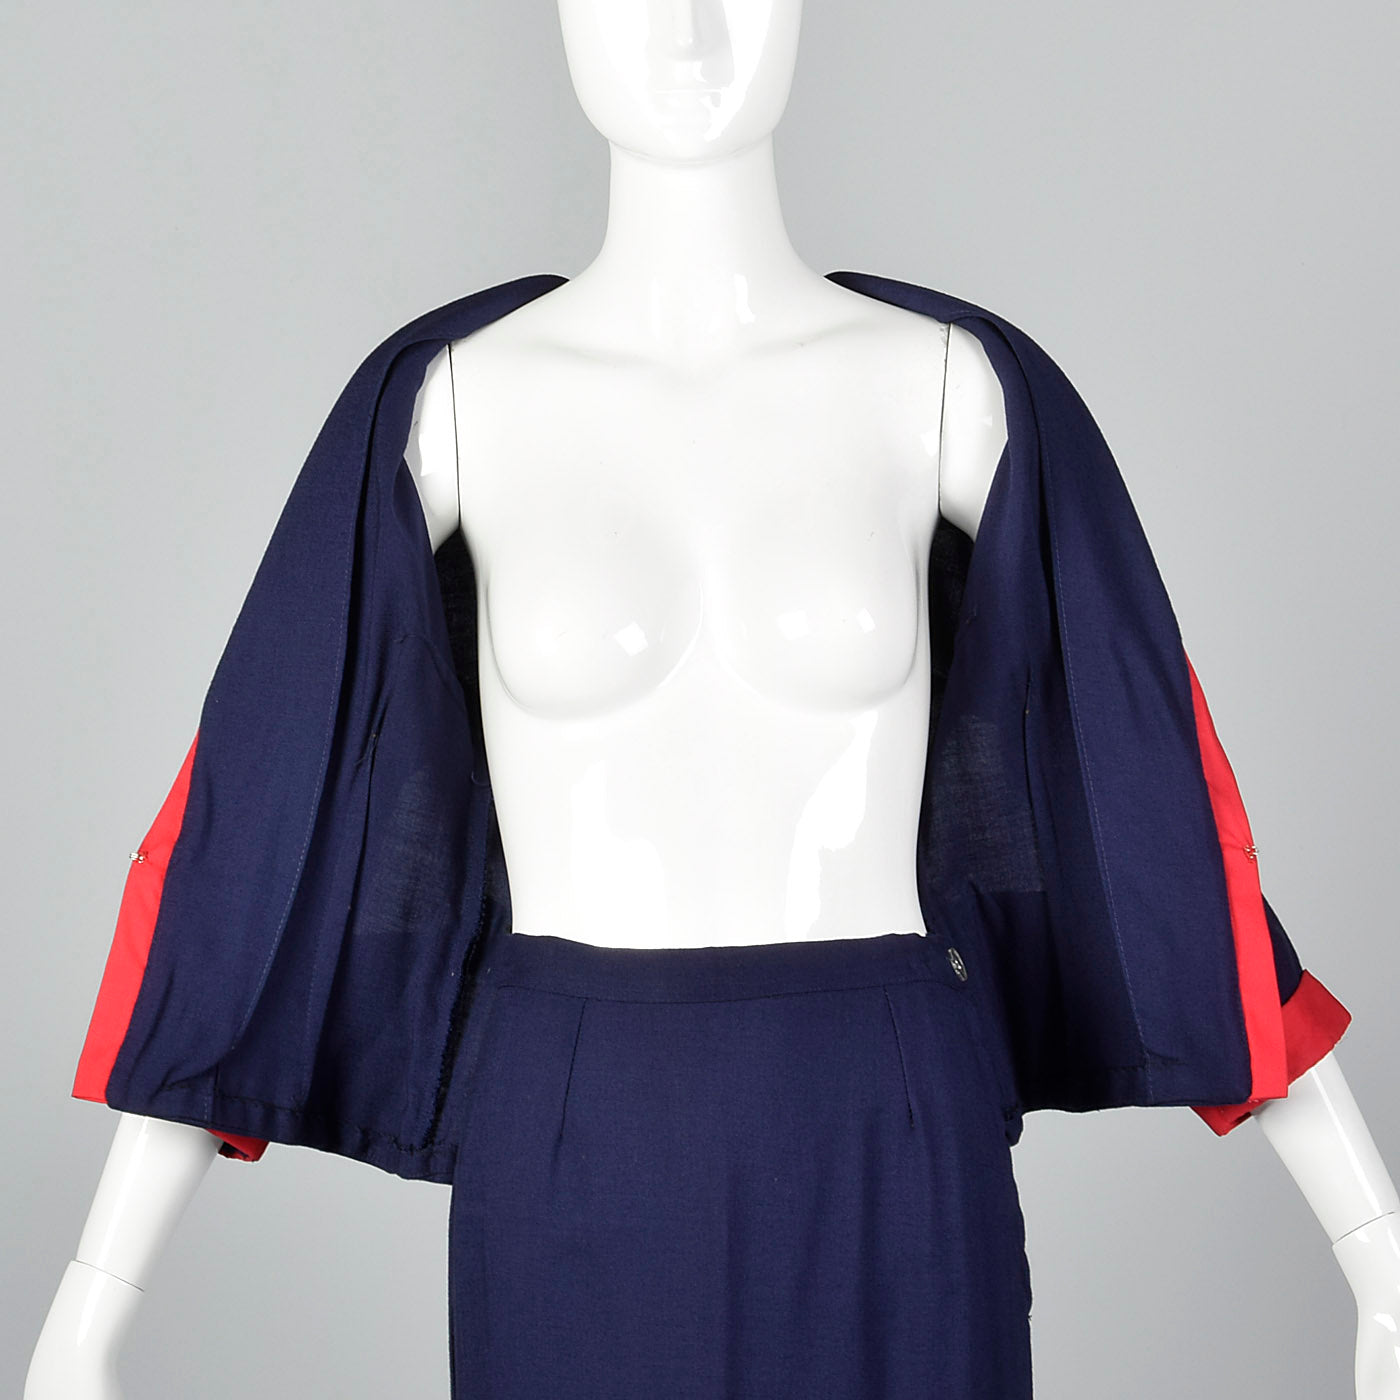 1950s Navy Sailor Style Skirt Suit